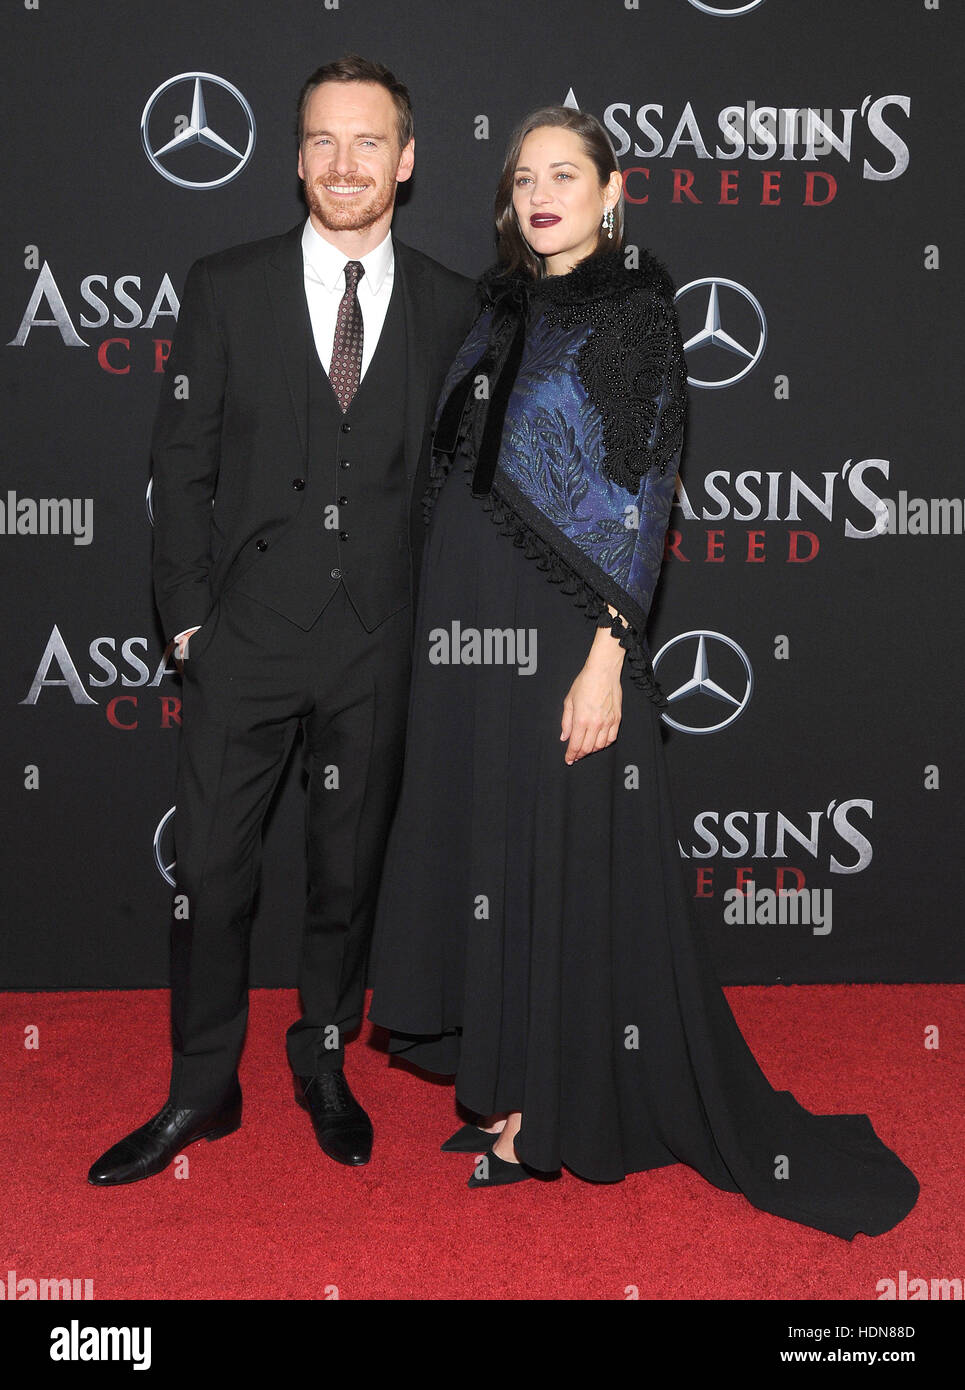 New York, USA. 13 Décembre, 2016. L'actrice Marion Cotillard et Michael assiste à l 'Assassin's Photo Stock